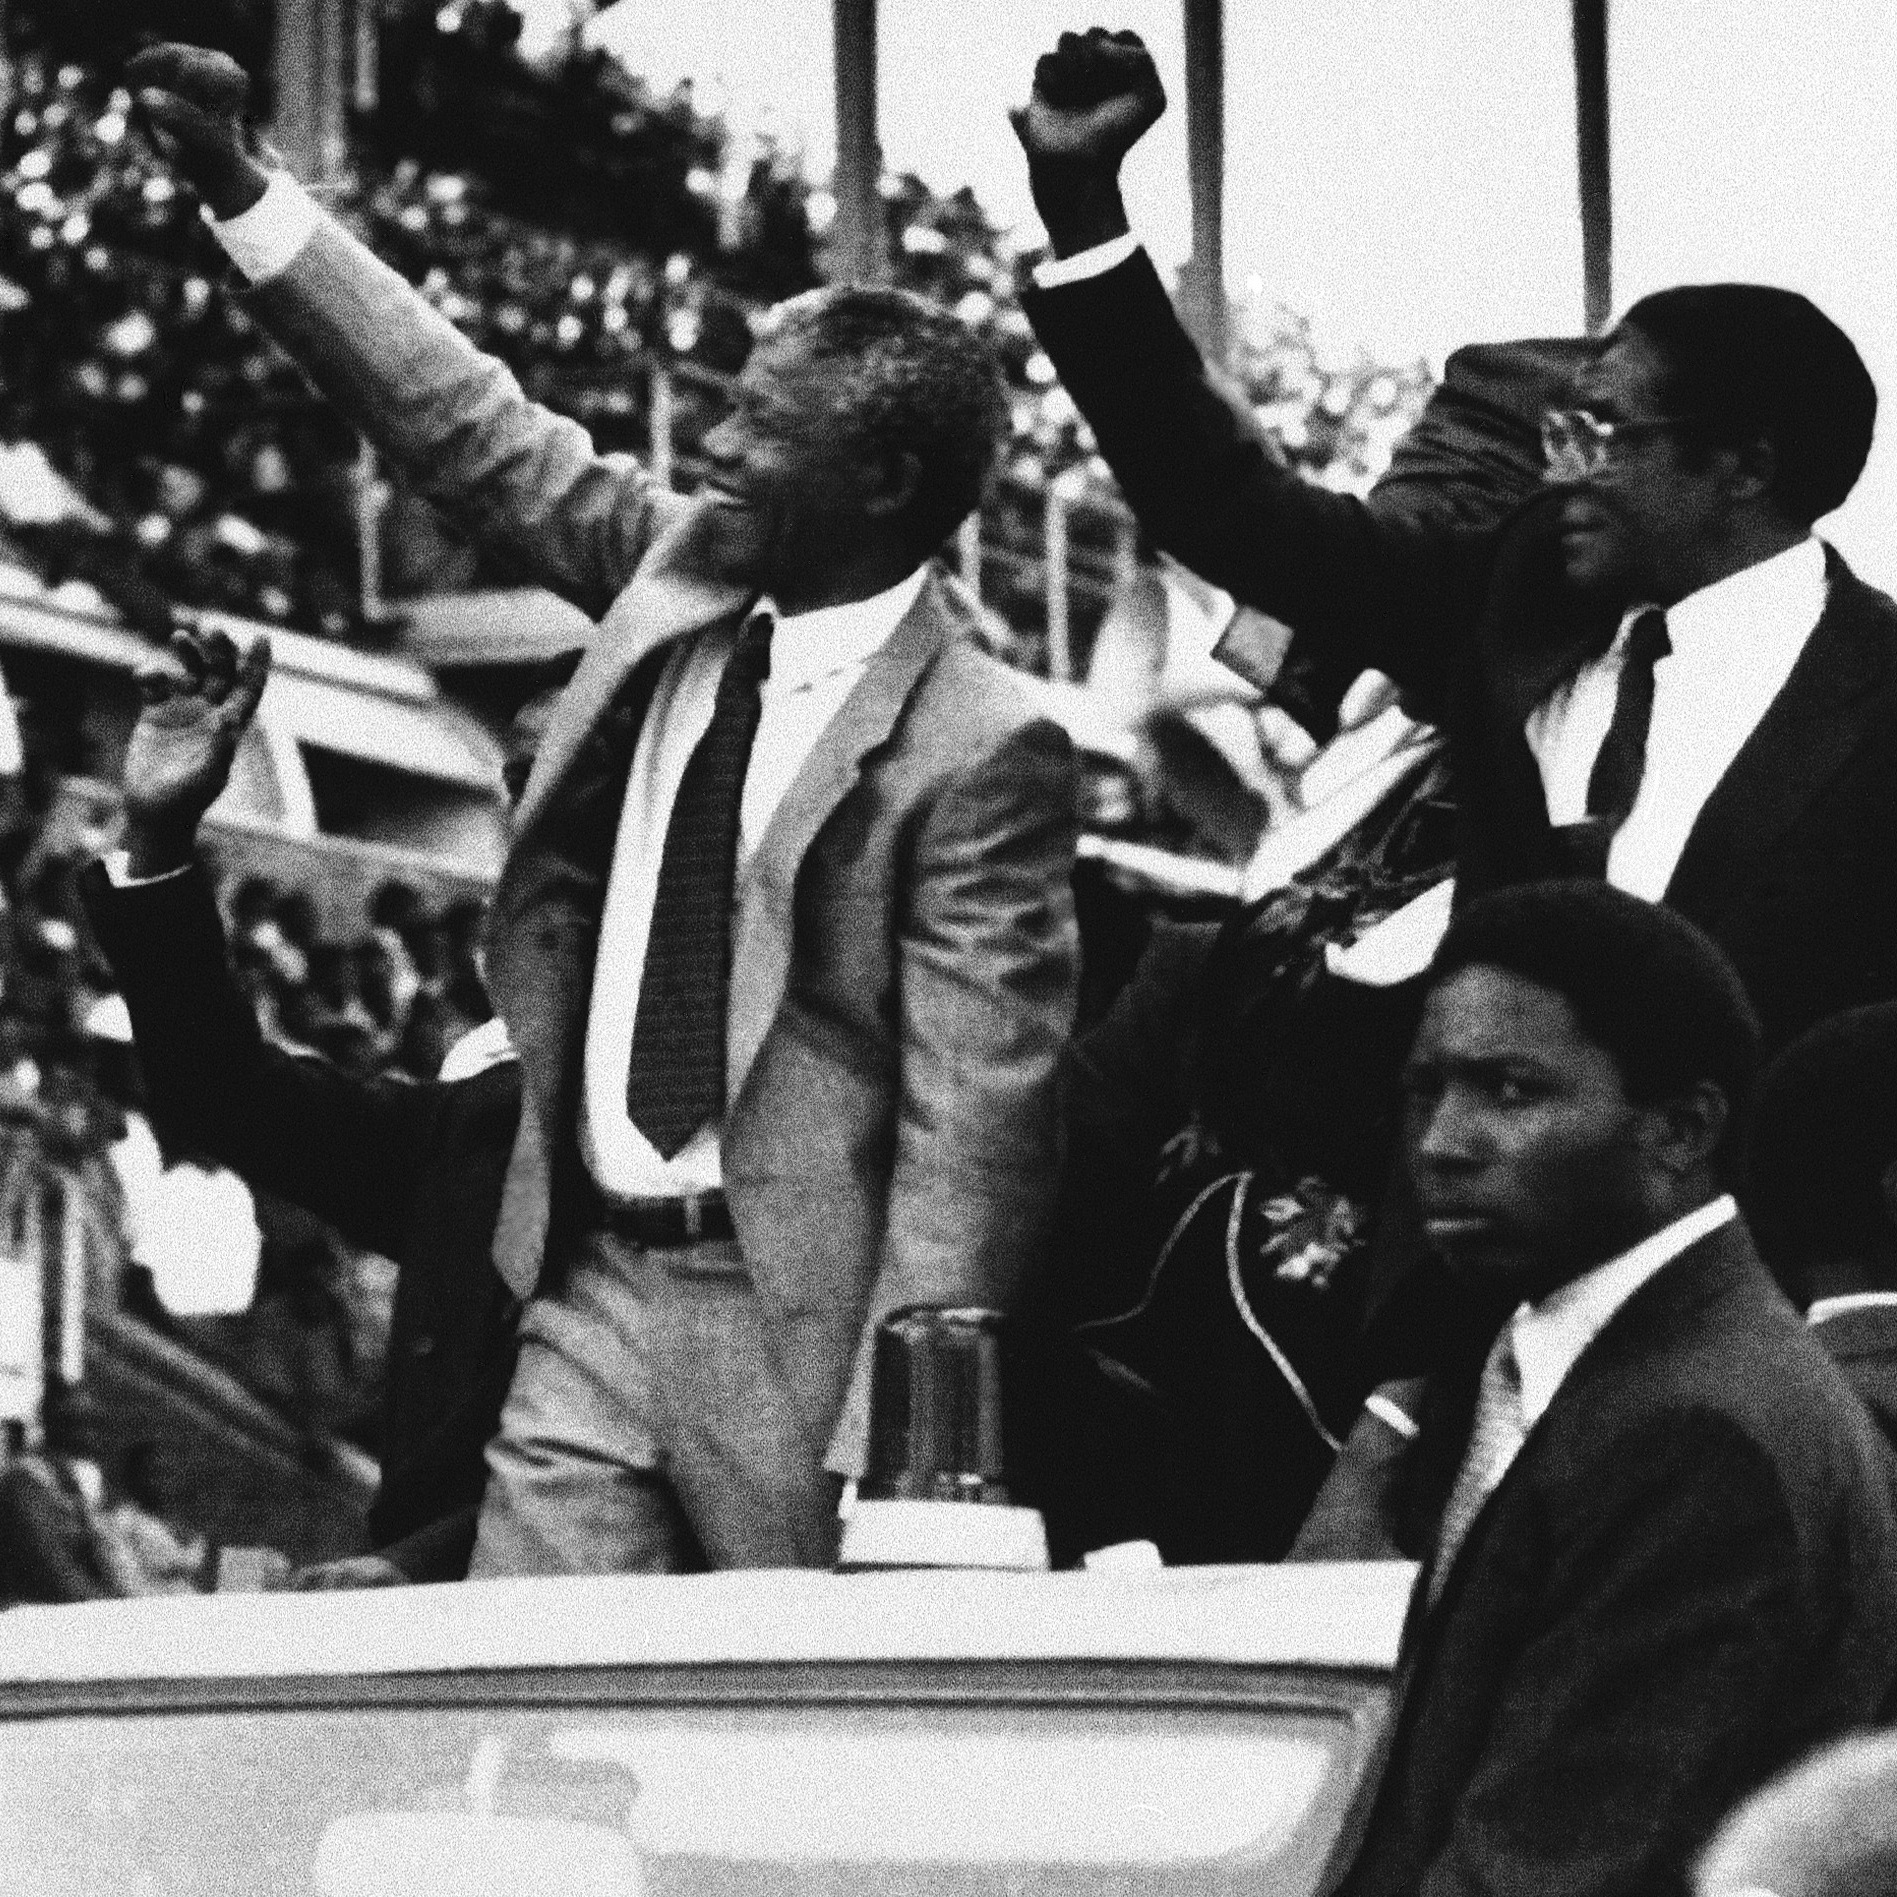 South Africa's Nelson Mandela, center, and Zimbabwe President Robert Mugabe, greet crowds in Harare, Zimbabwe, at the start of the new Zimbabwe public holiday, Mandela Day, March 5, 1990, Harare, Zimbabwe.